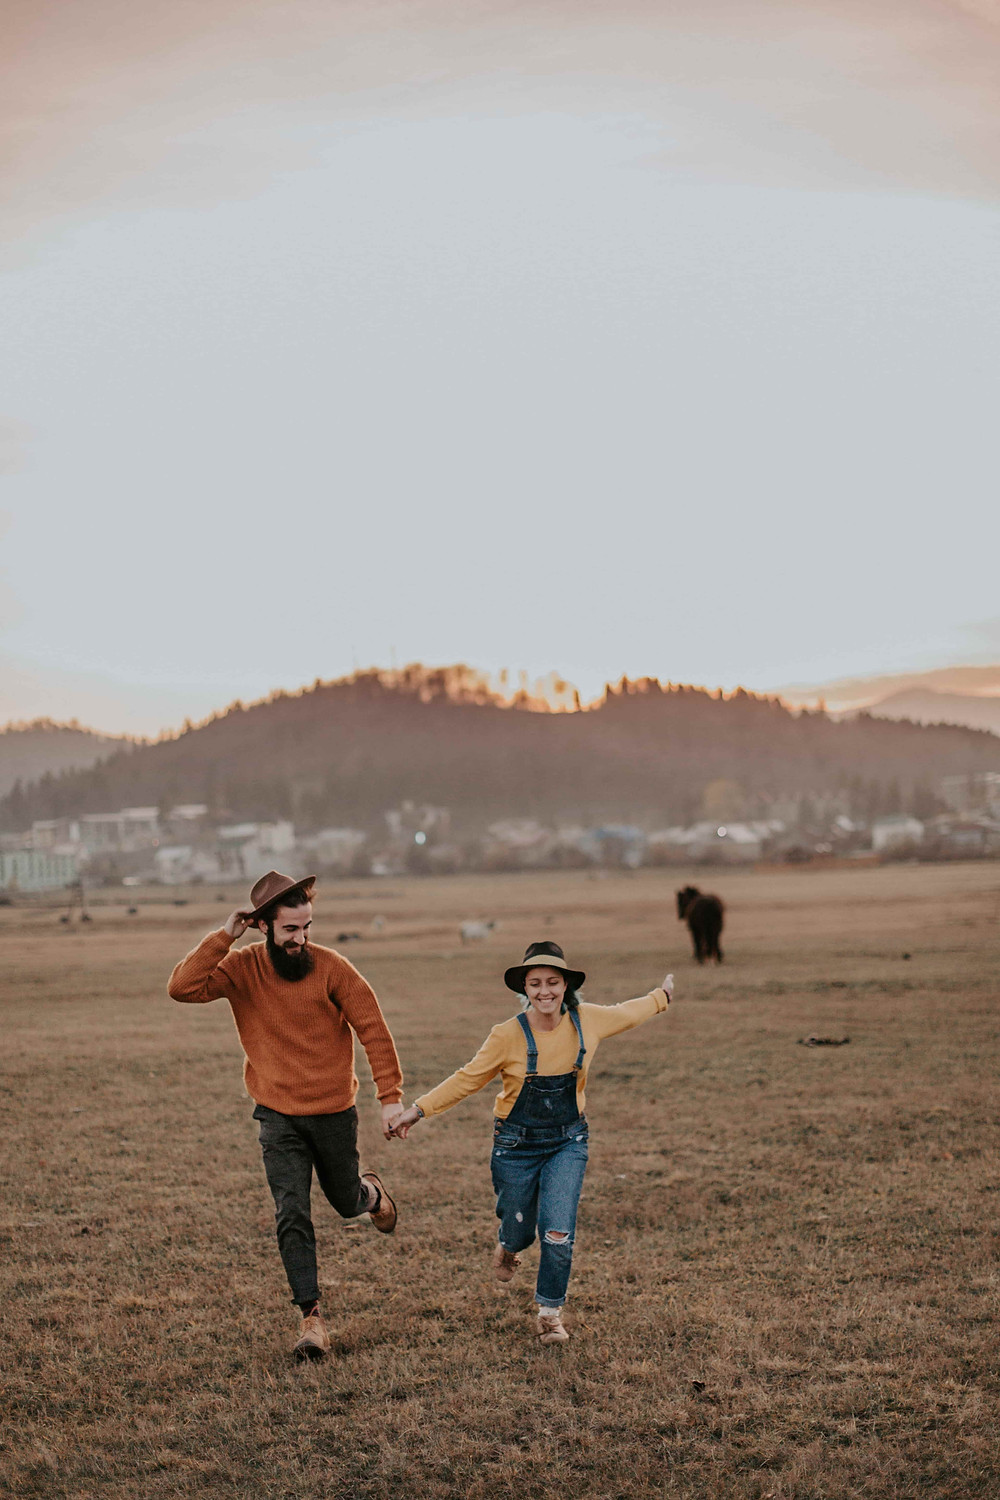 Wedding Shoot Pose Where Couple is holding hands and running through a field